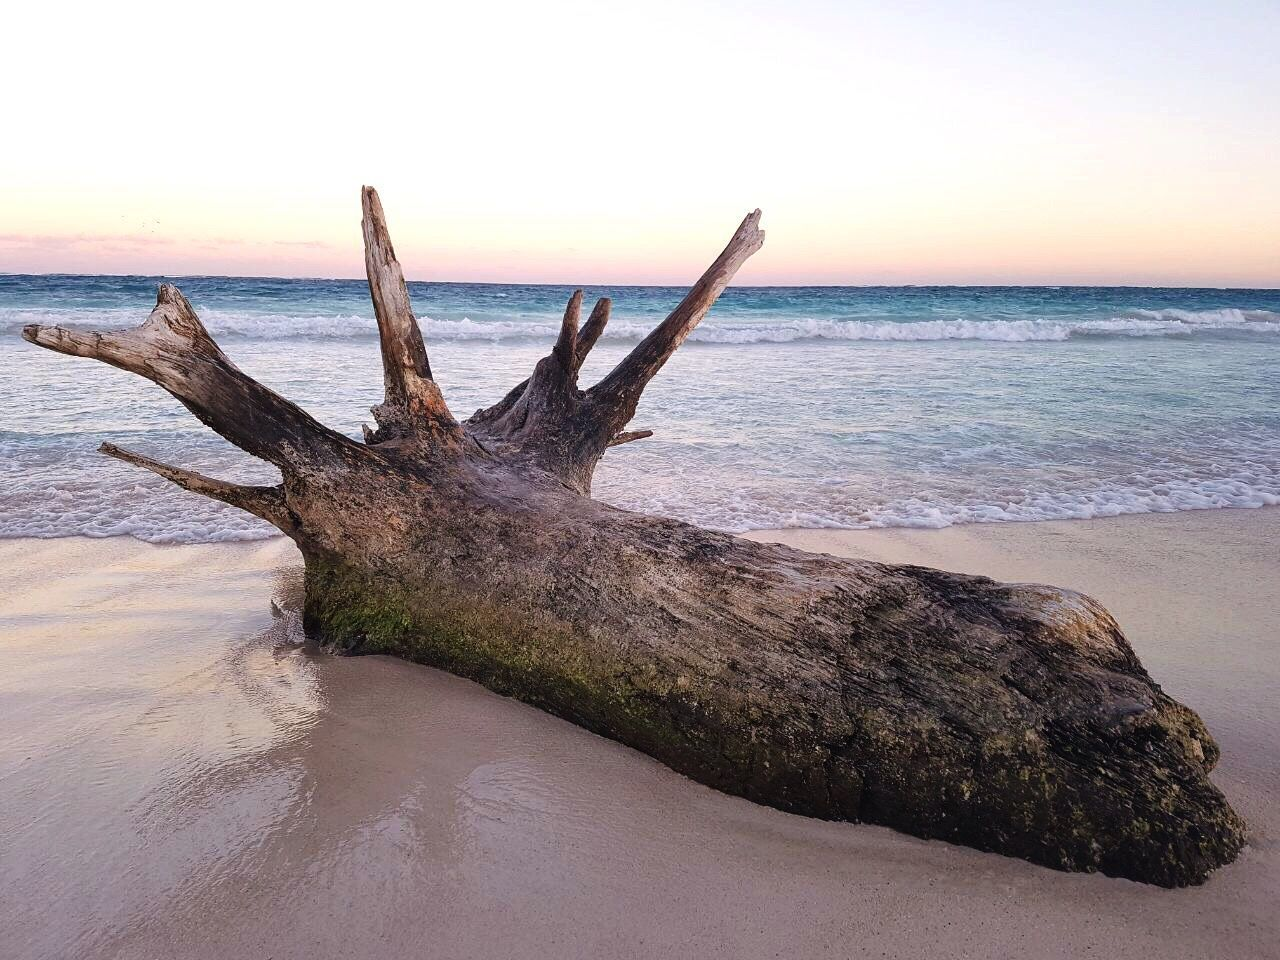 sea, horizon over water, beach, nature, water, beauty in nature, sunset, scenics, sand, no people, outdoors, sky, day, tree, close-up, mammal